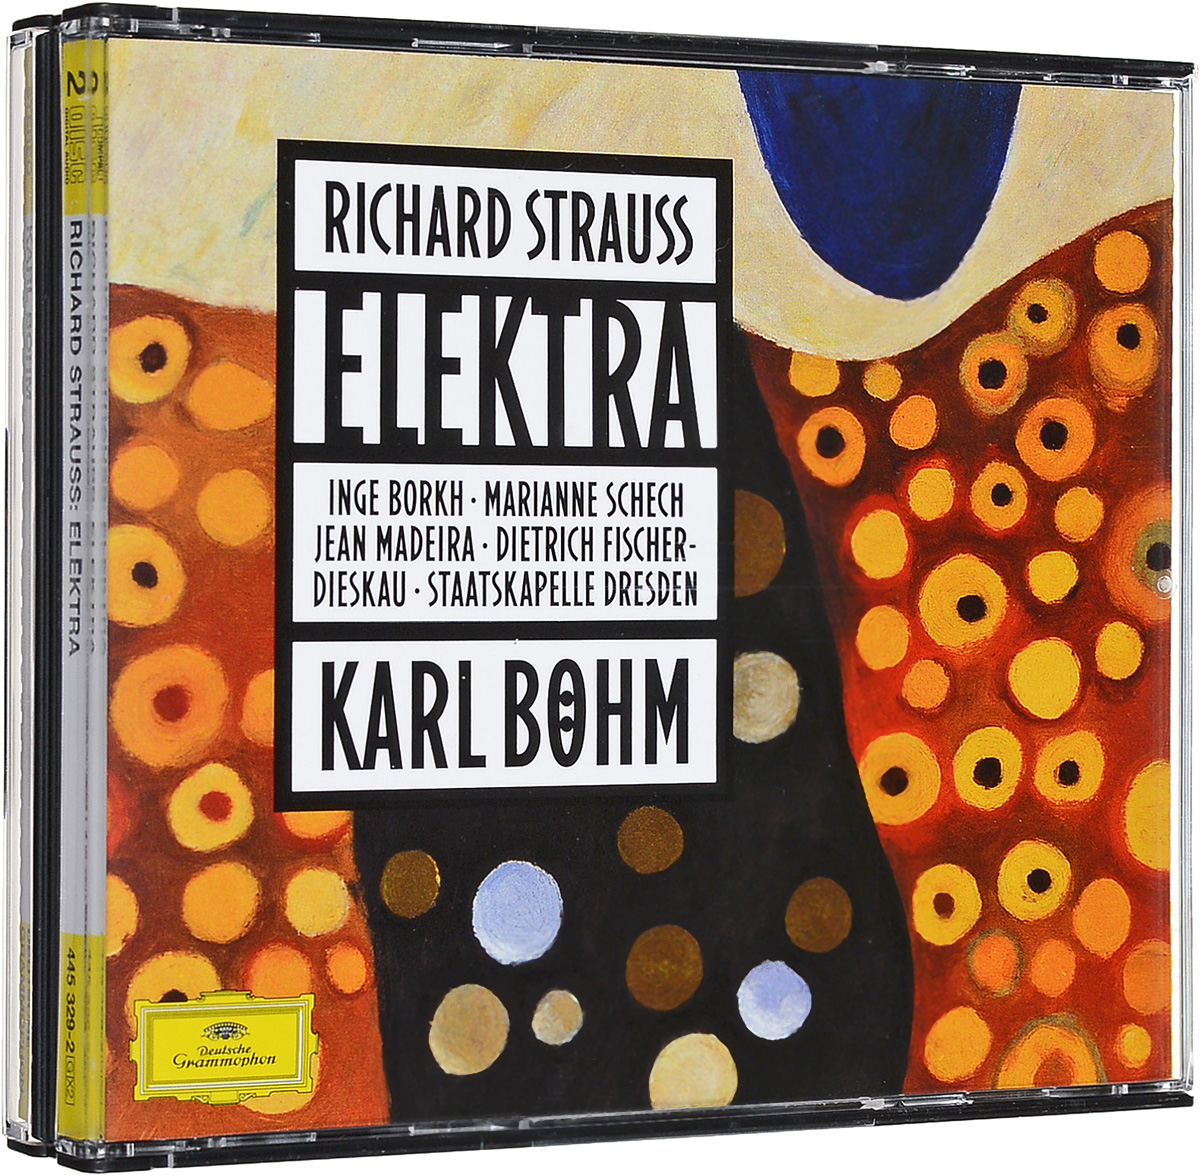 Карл Боэм Karl Boehm. Richard Strauss: Elektra (2 CD) цена